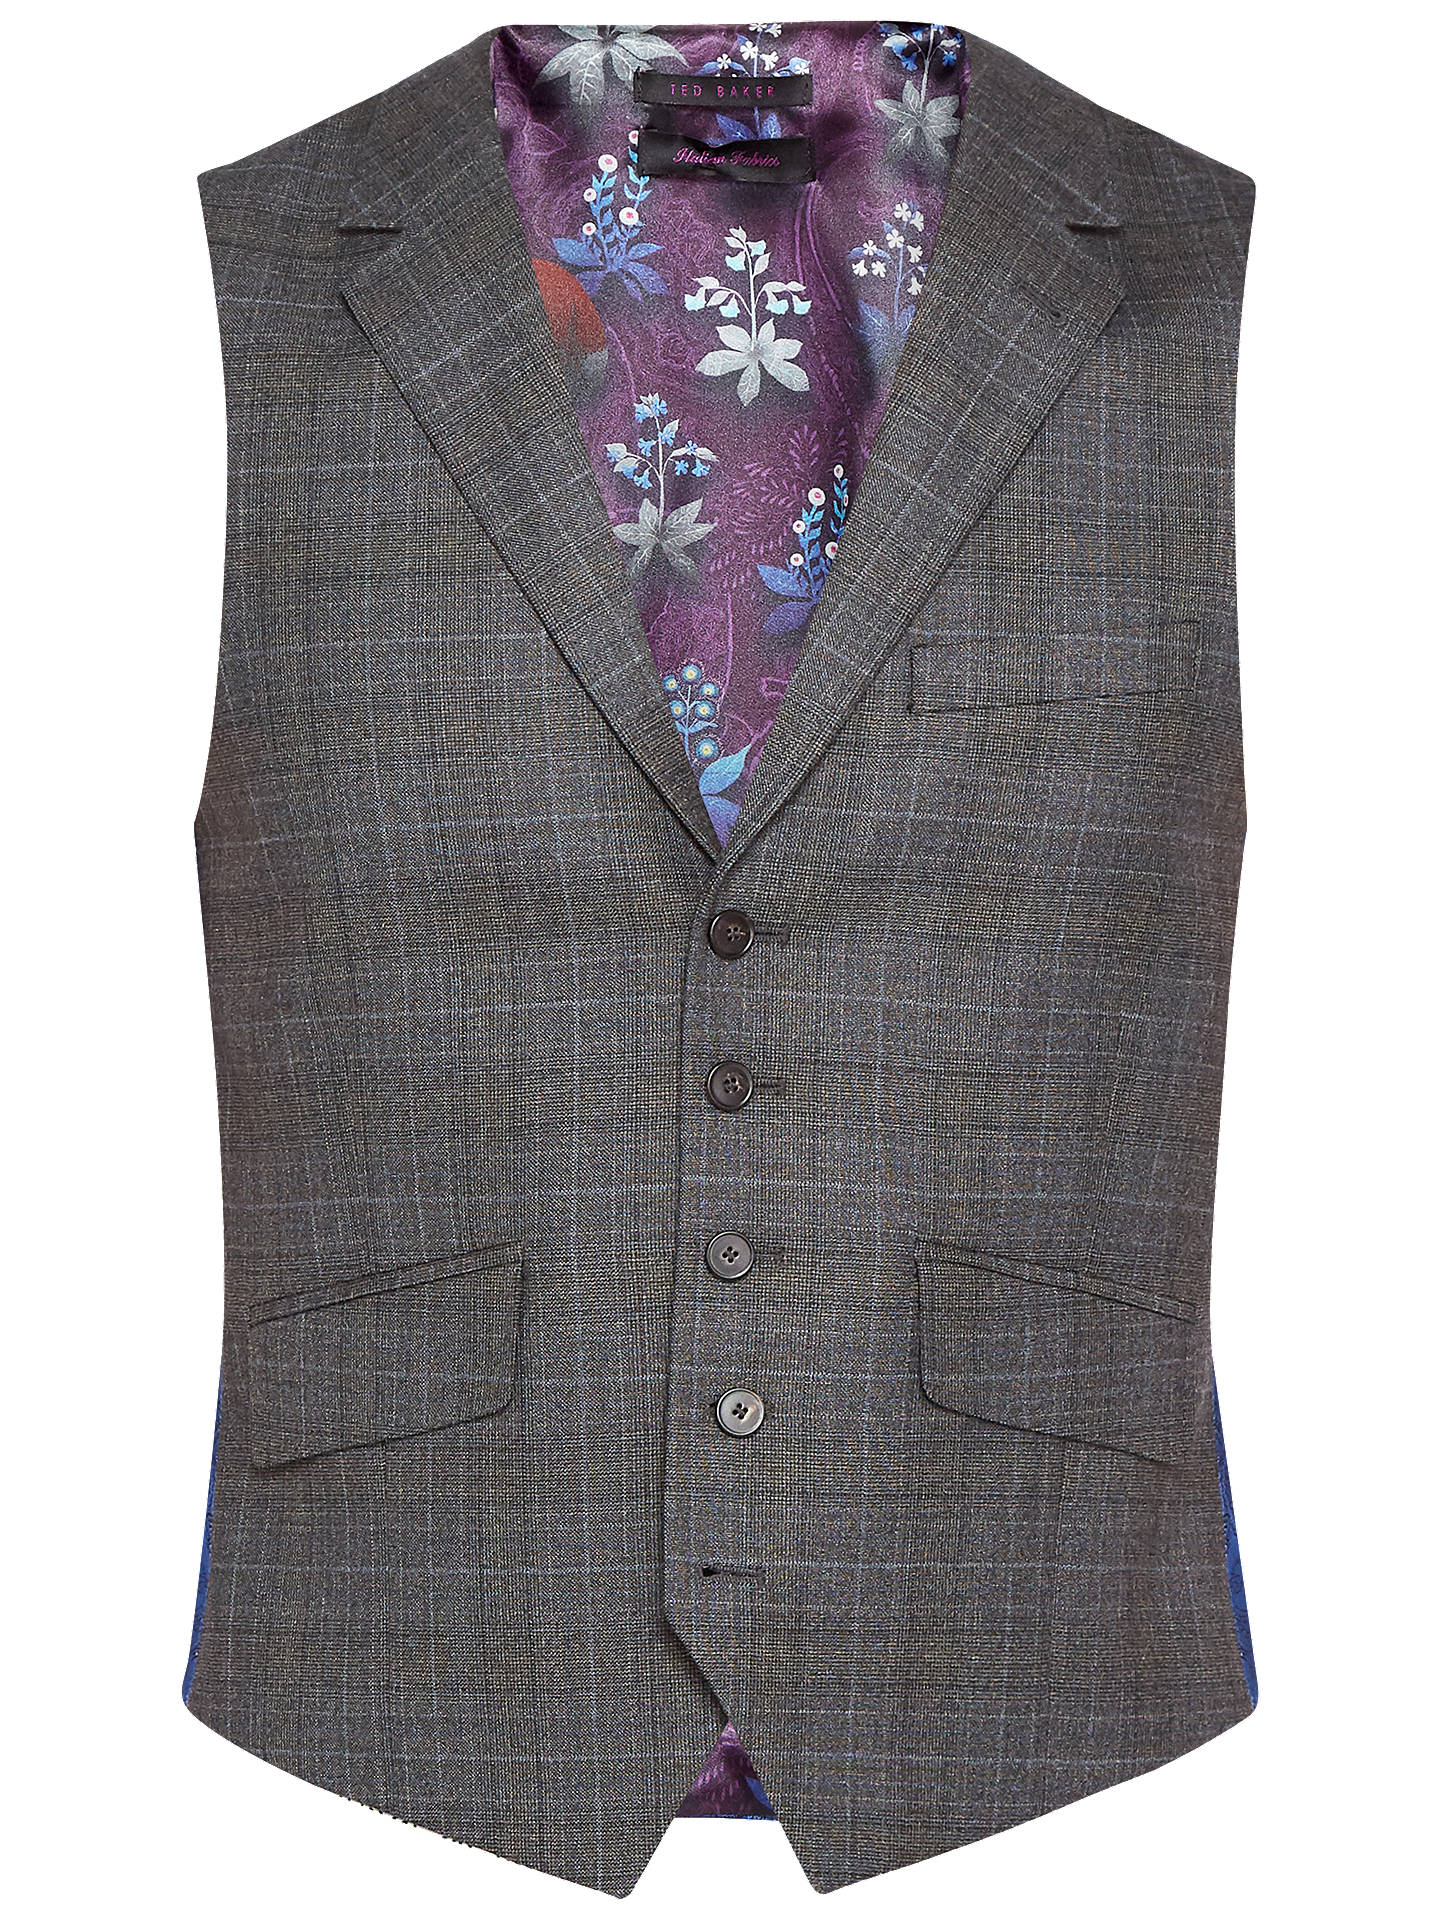 BuyTed Baker Dover Sterling Check Tailored Waistcoat, Charcoal, 40R Online at johnlewis.com